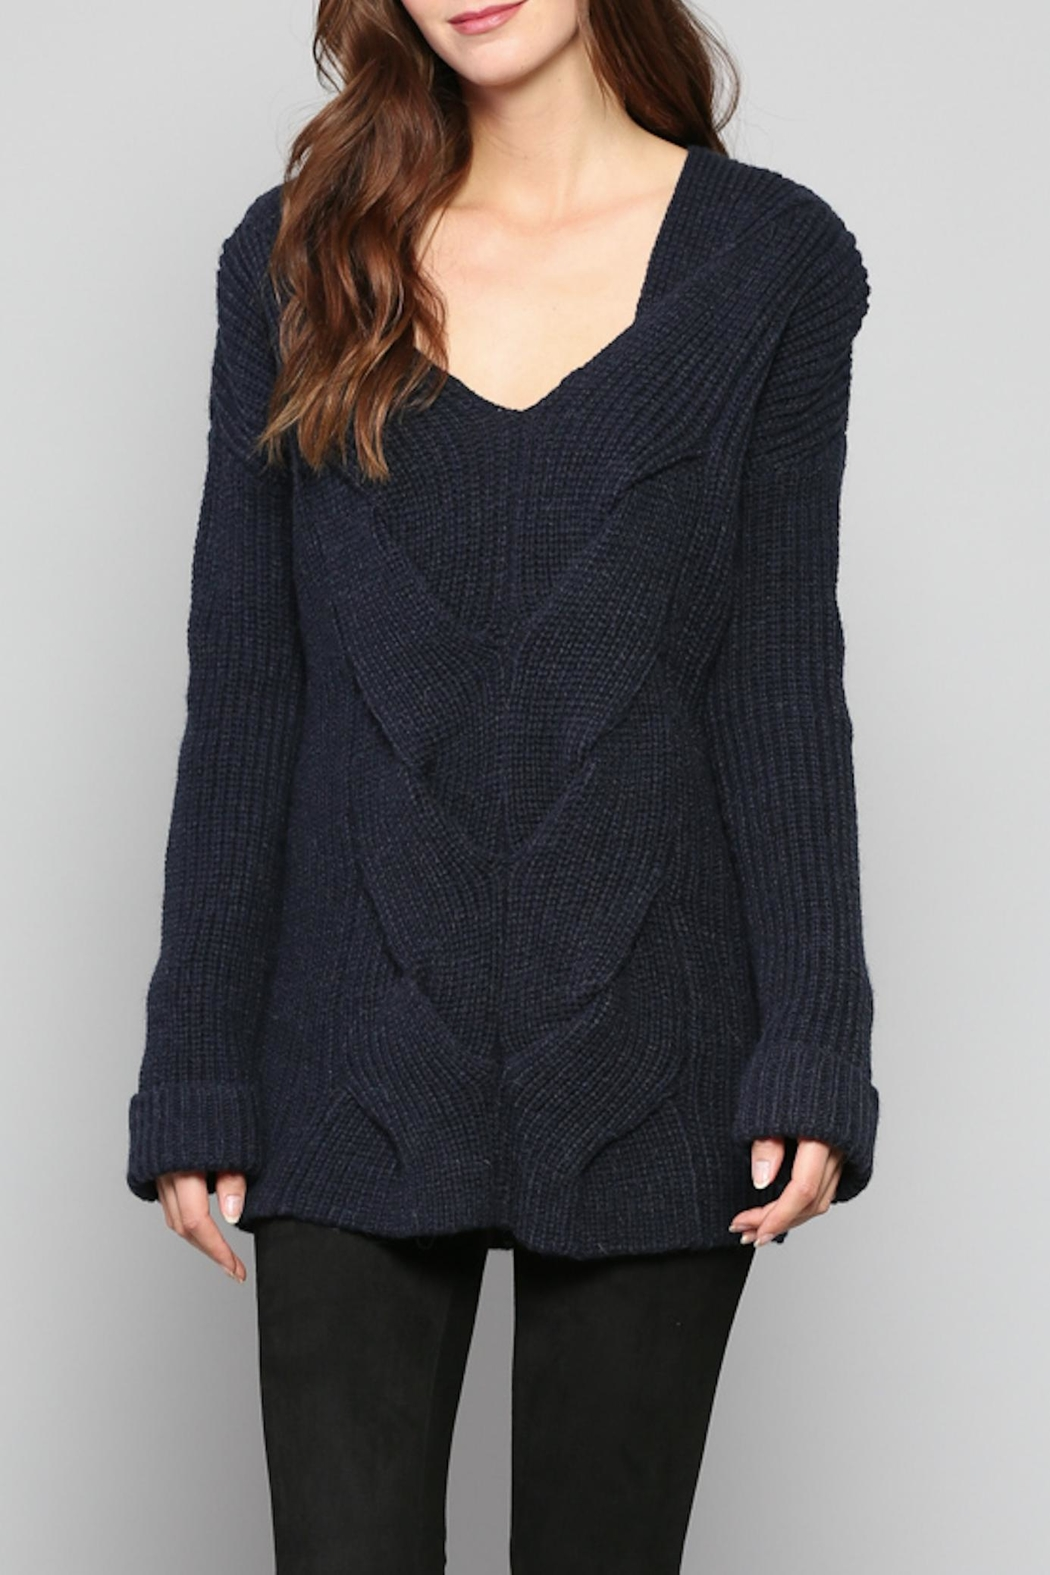 Rose & Eye Navy Cable Knit Top - Main Image